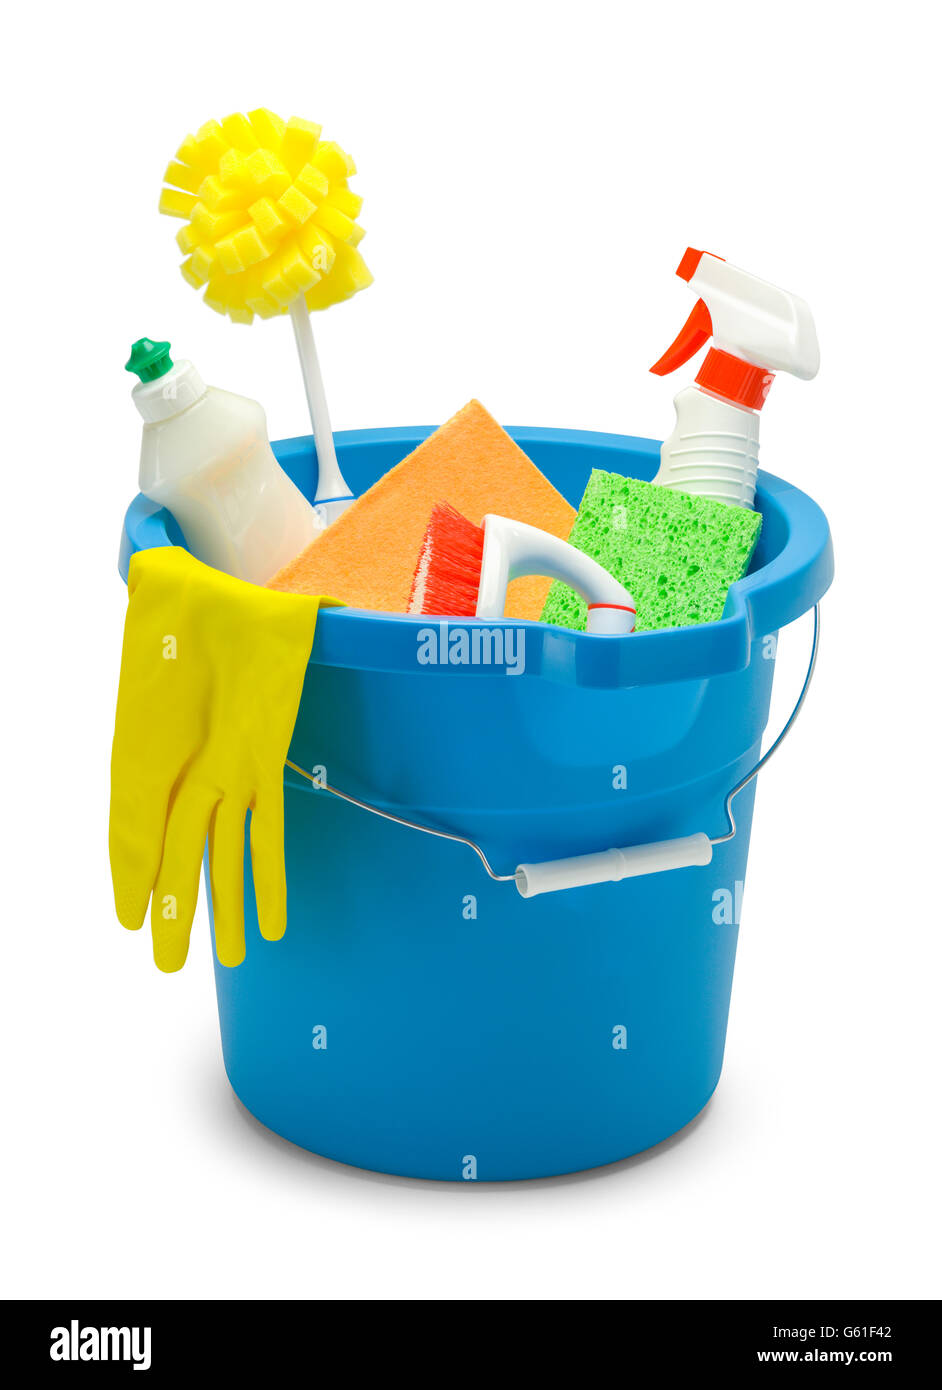 Blue Bucket with Cleaning Supplies Isolated on White Background. - Stock Image